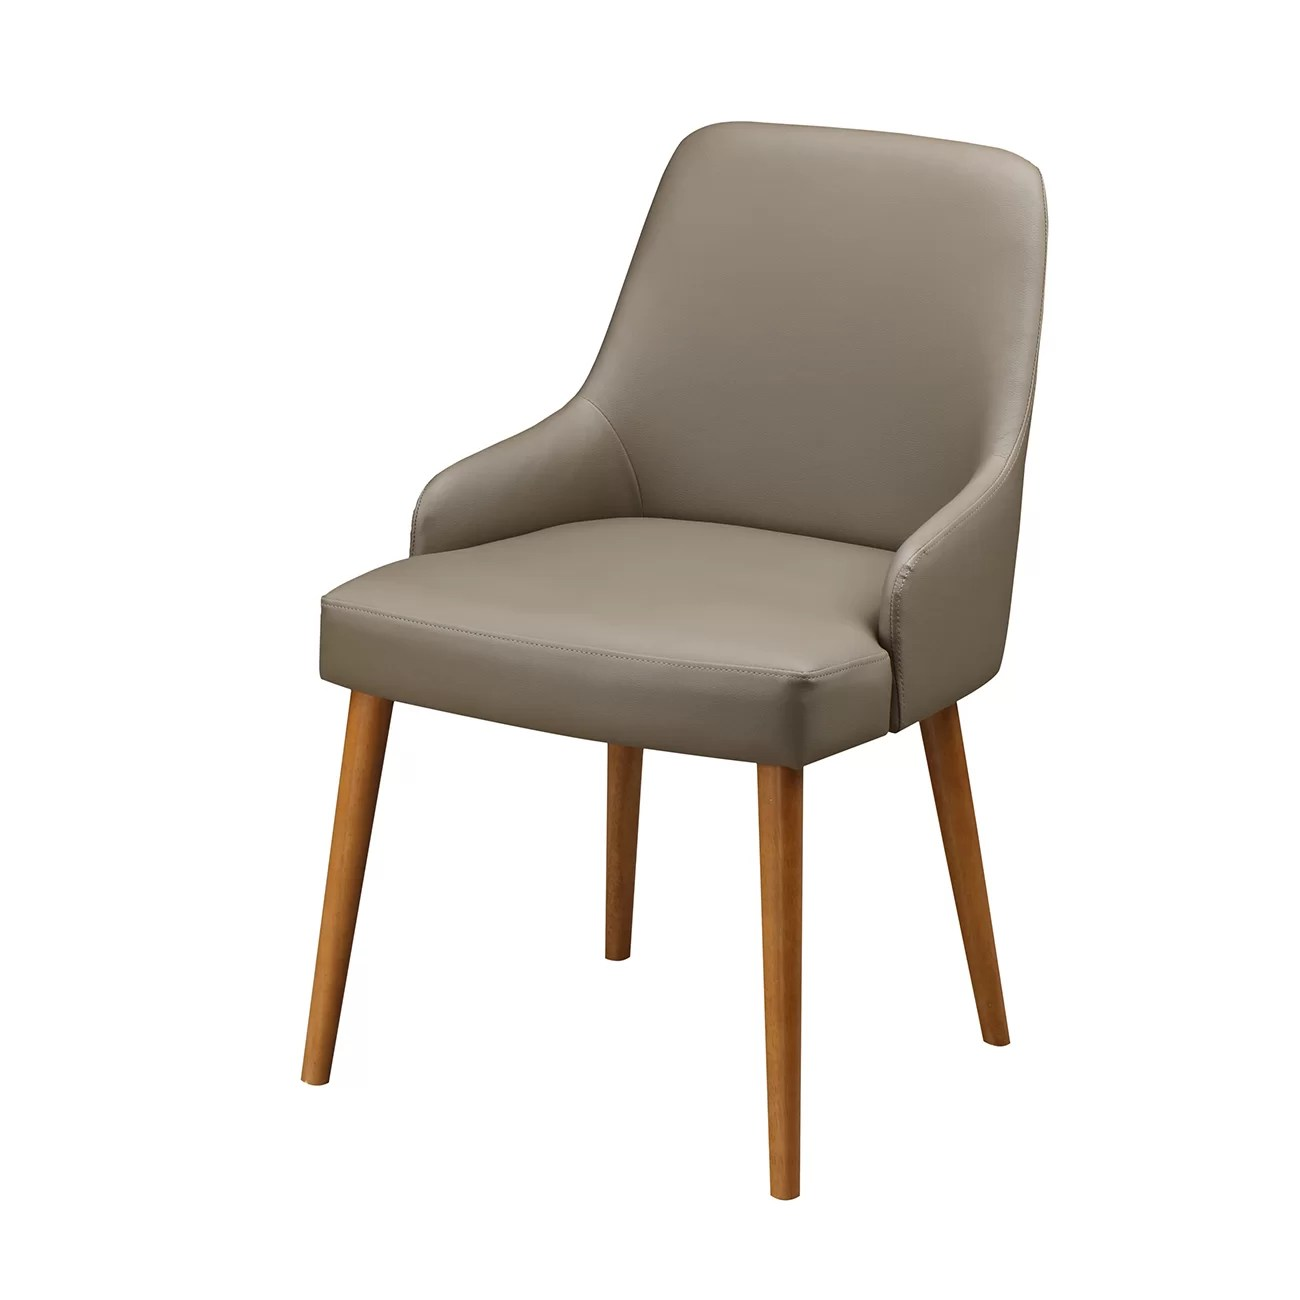 dining chairs canada upholstered marcel breuer chair replica george oliver buckingham modern